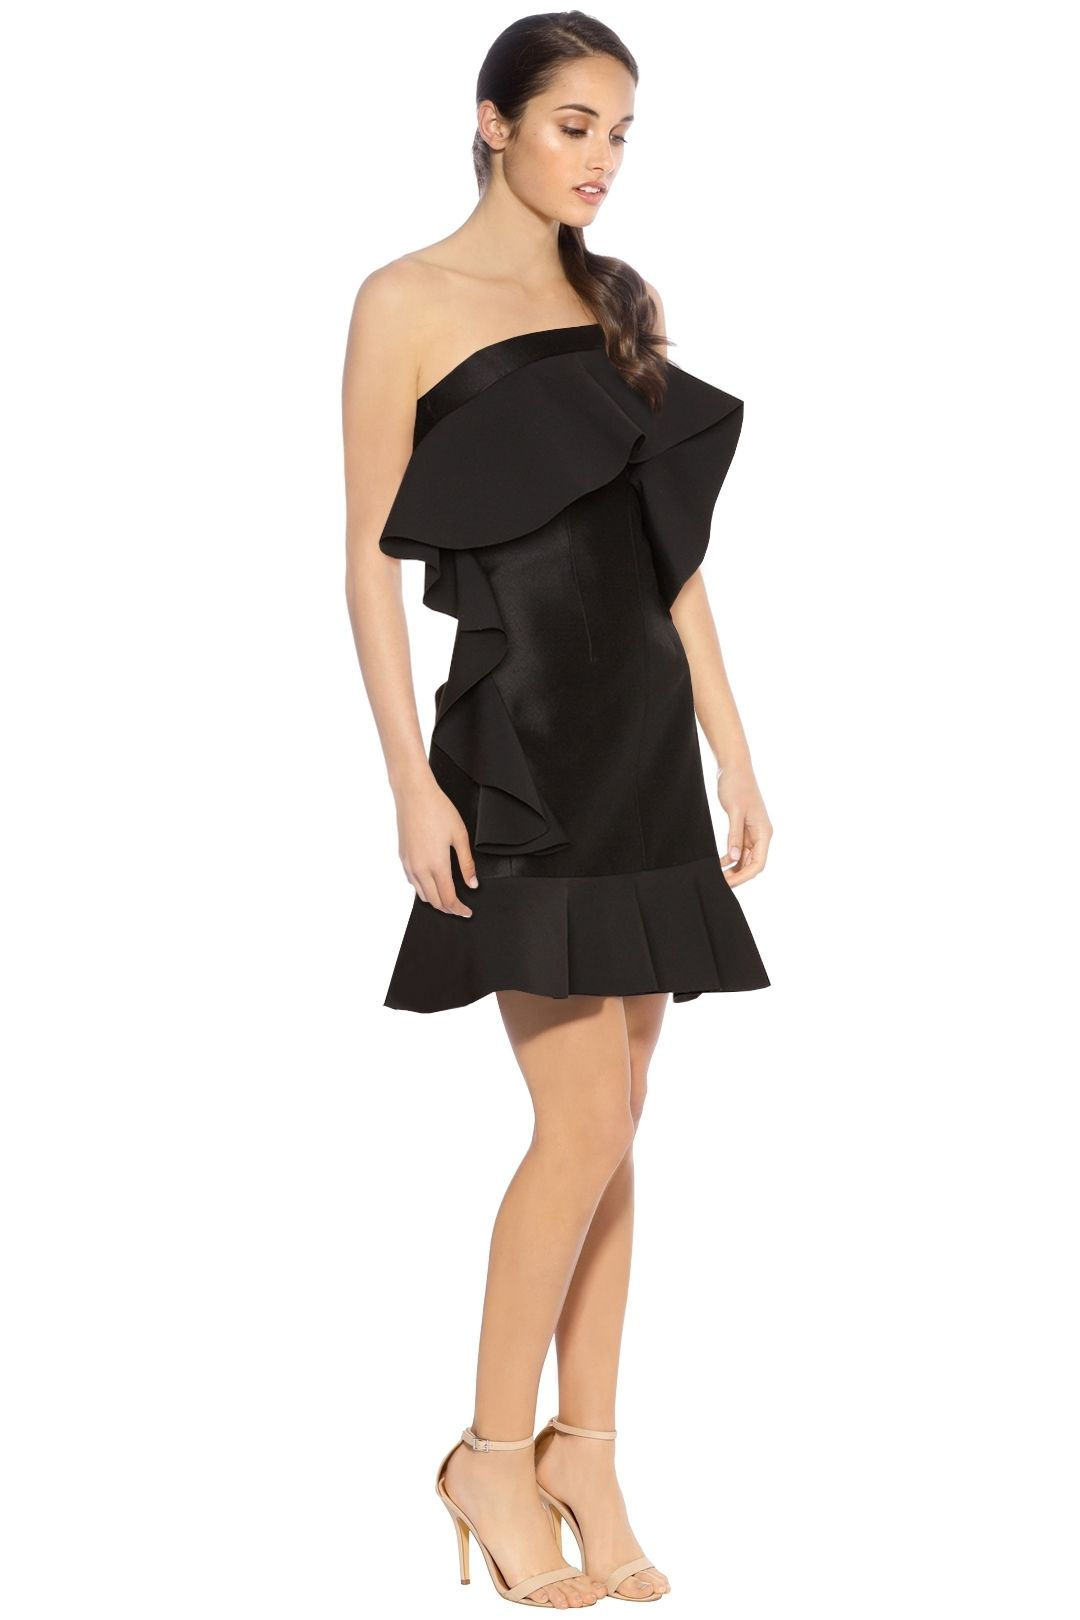 By Johnny - Tess Angel Frill Mini Dress - Black - Side